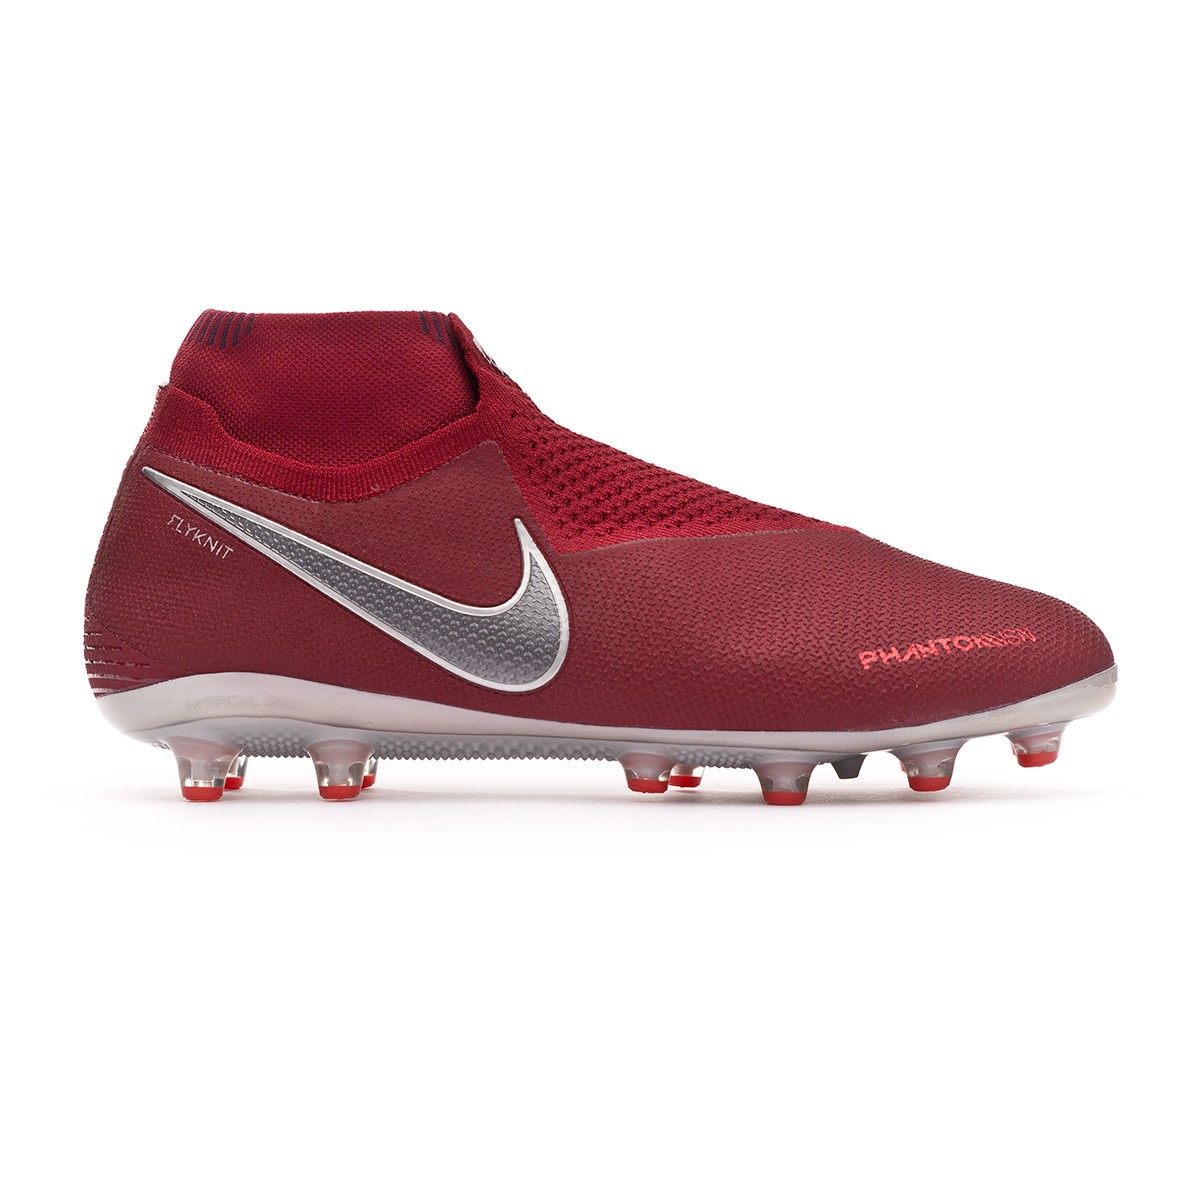 9c048f93c Football Boots Nike Phantom Vision Elite DF AG-Pro Team red-Metallic dark  grey-Bright crimson - Tienda de fútbol Fútbol Emotion